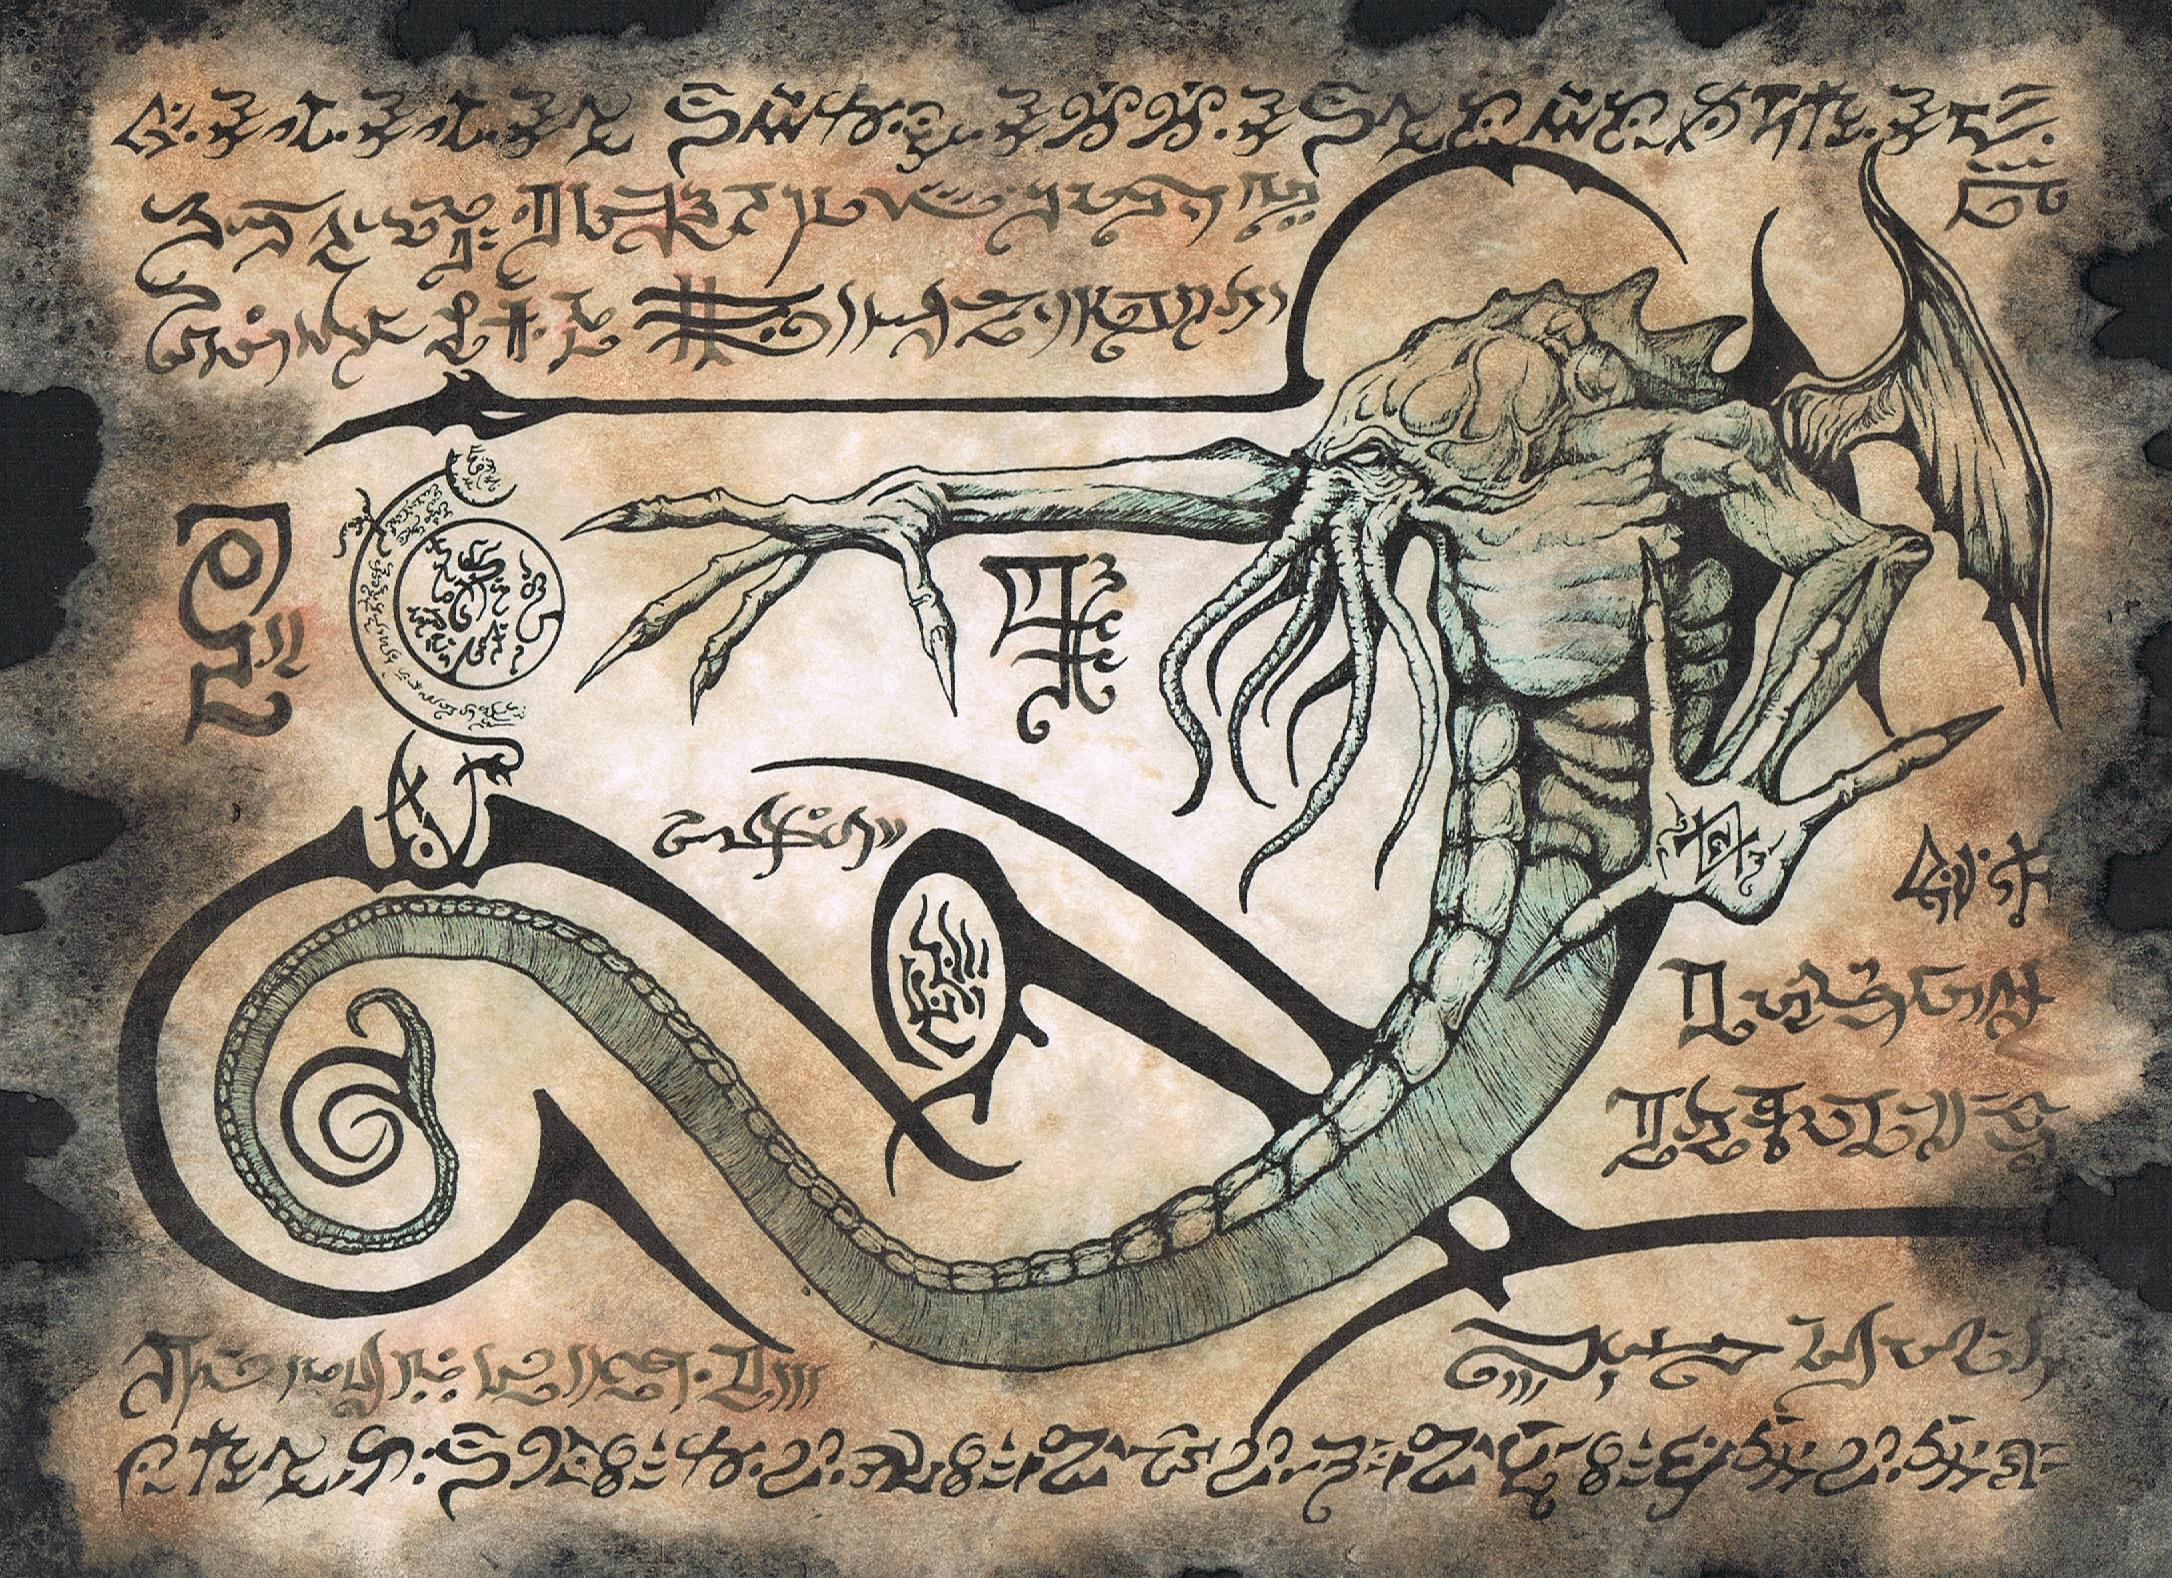 Necronomicon: The Ancient Book Of Magic That Allegedly ... A Dangerous Method